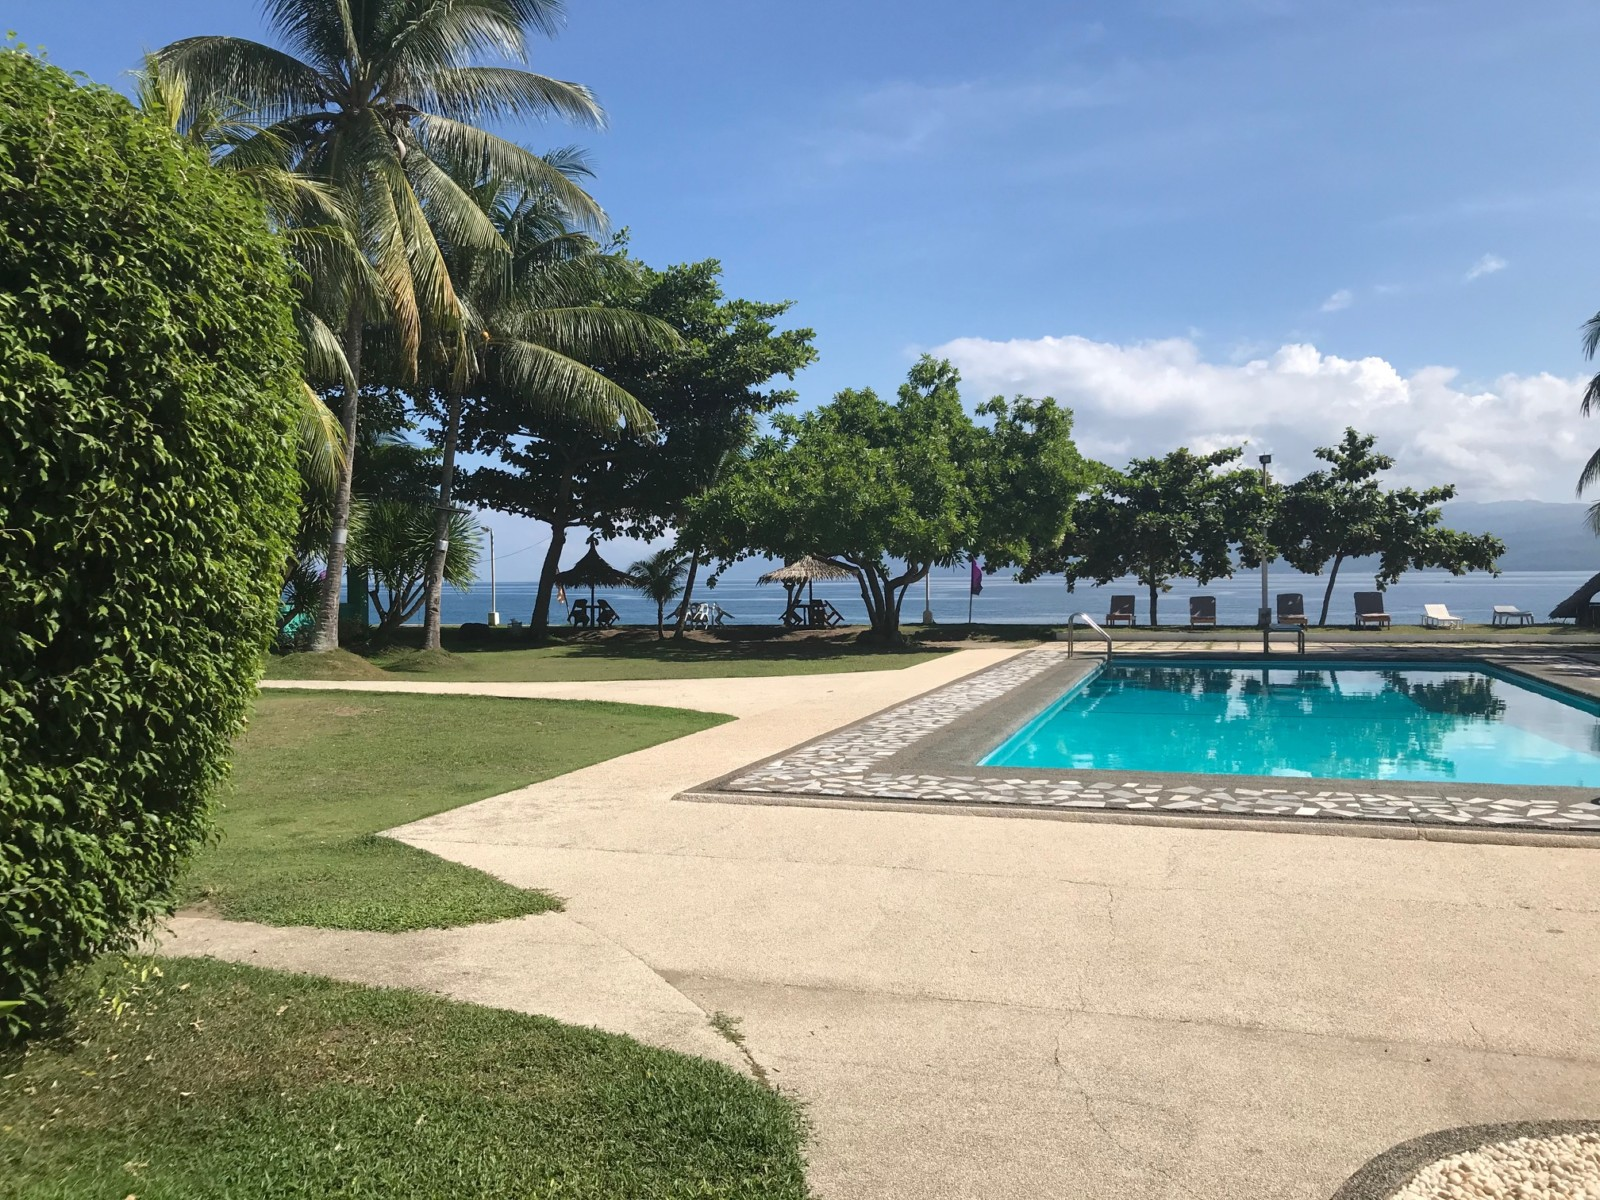 Beach Resort For Sale in Negros Oriental